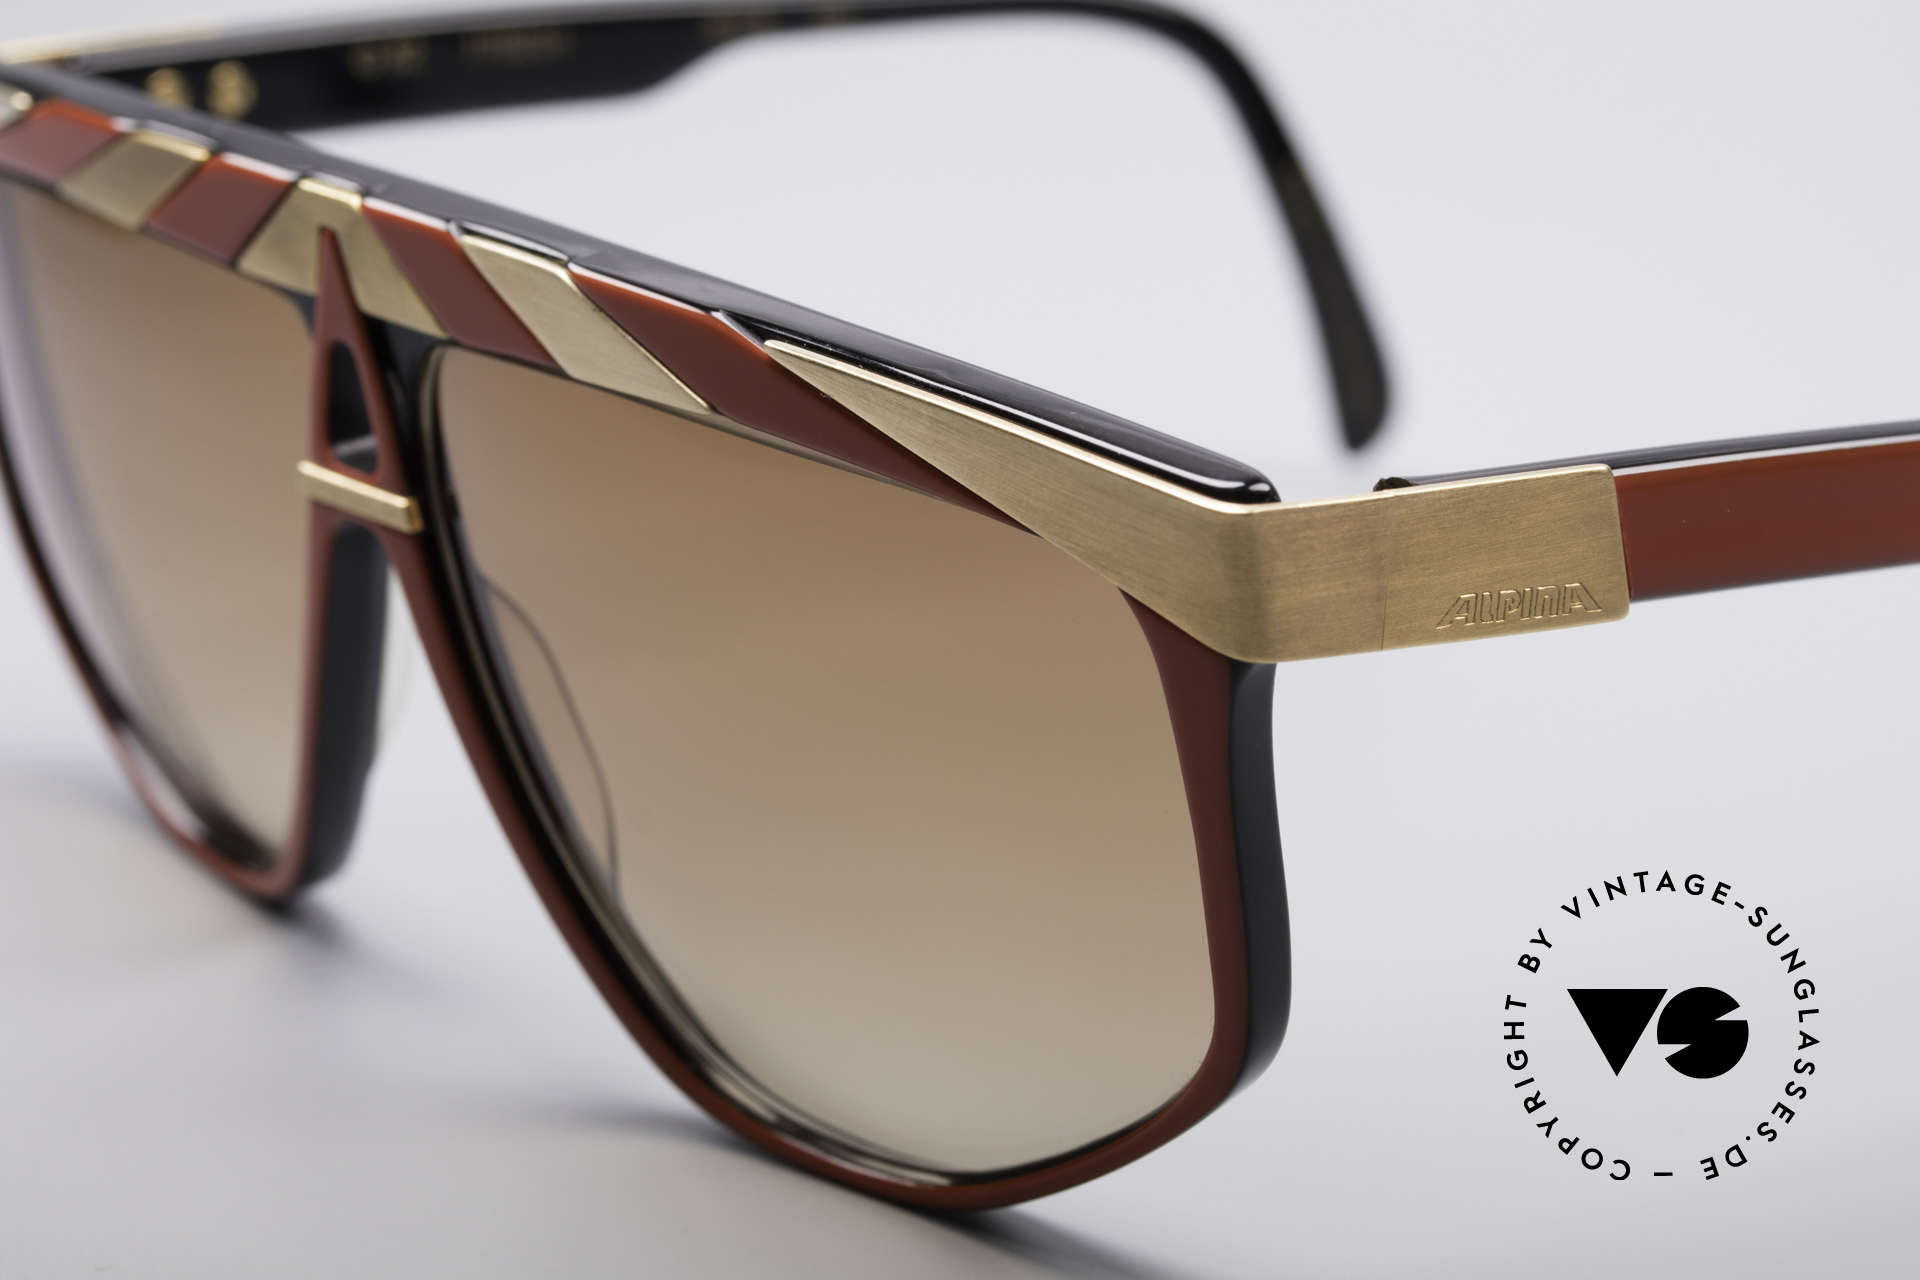 Alpina G82 Gold Plated Vintage Shades, top notch quality (24ct gold plated metal appliqué), Made for Men and Women